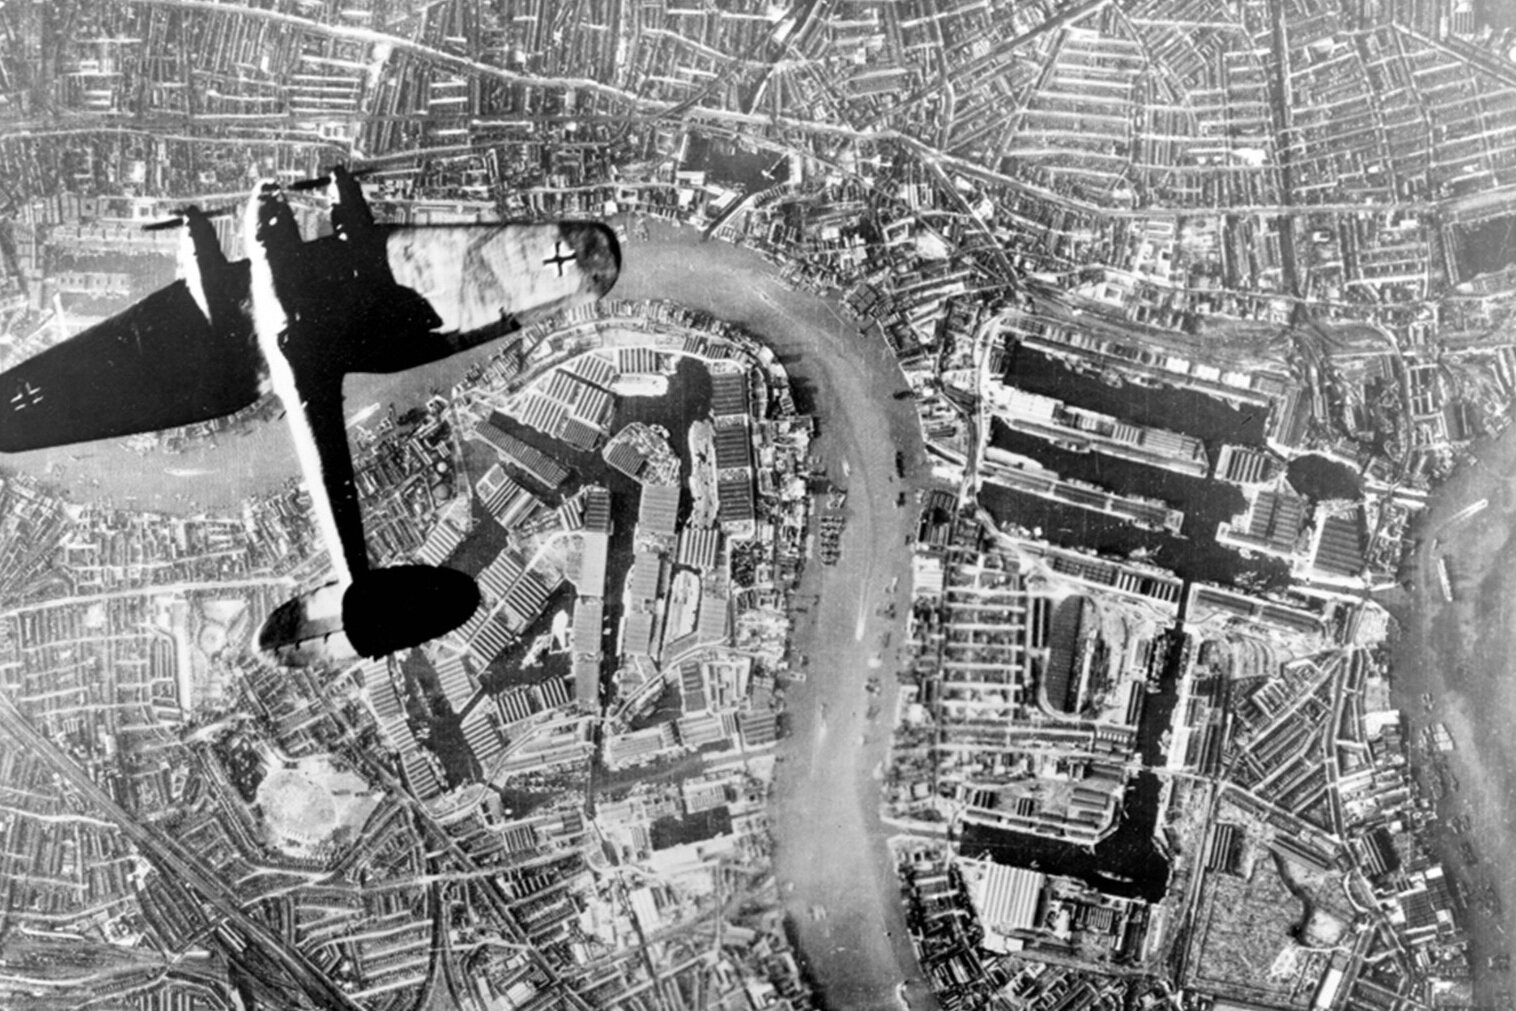 Heinkel_over_Wapping-2.jpg